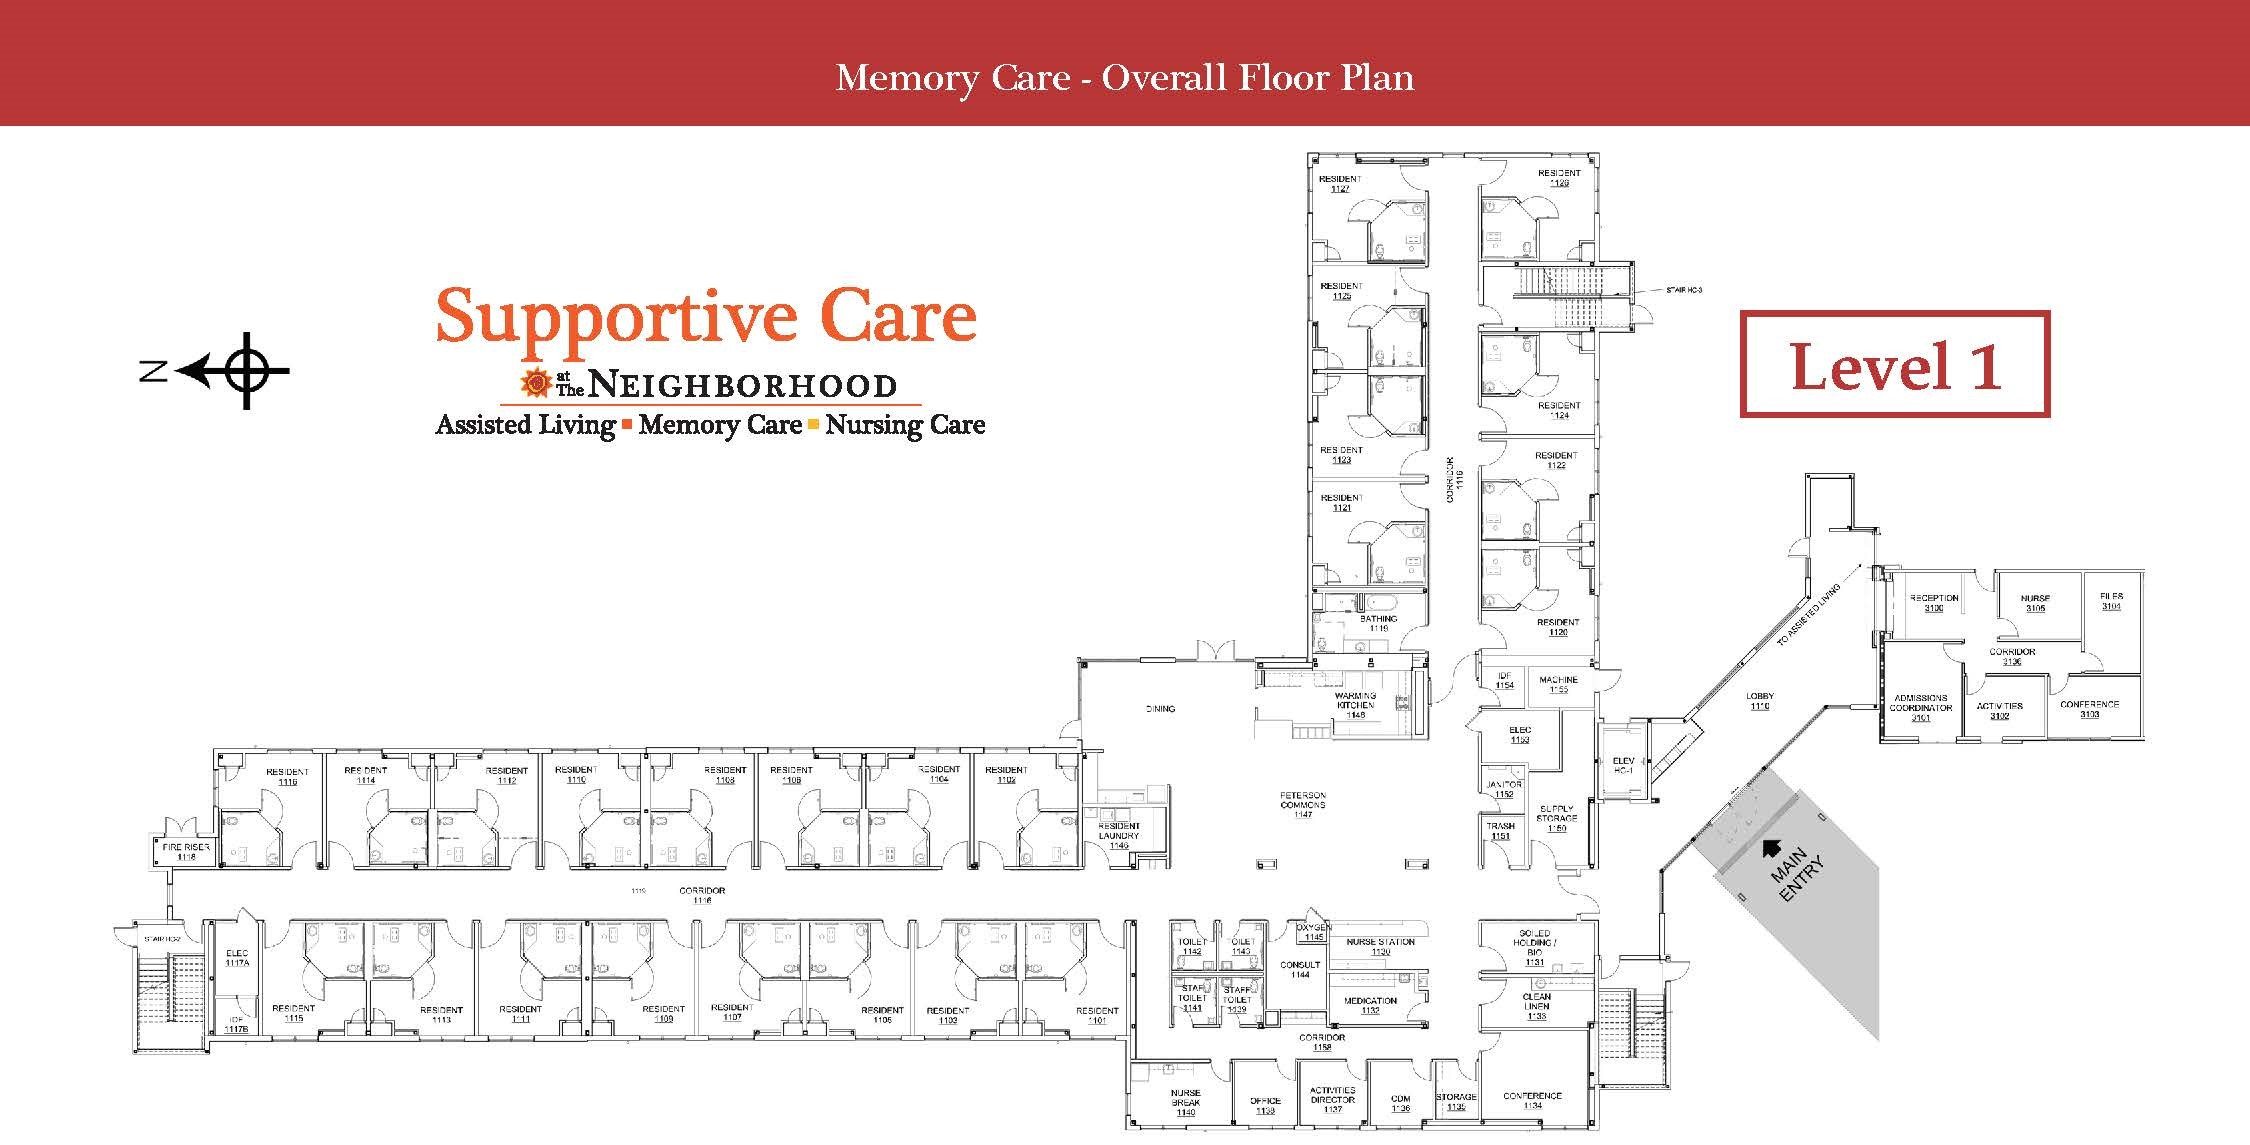 Memory Care Level 1 Map